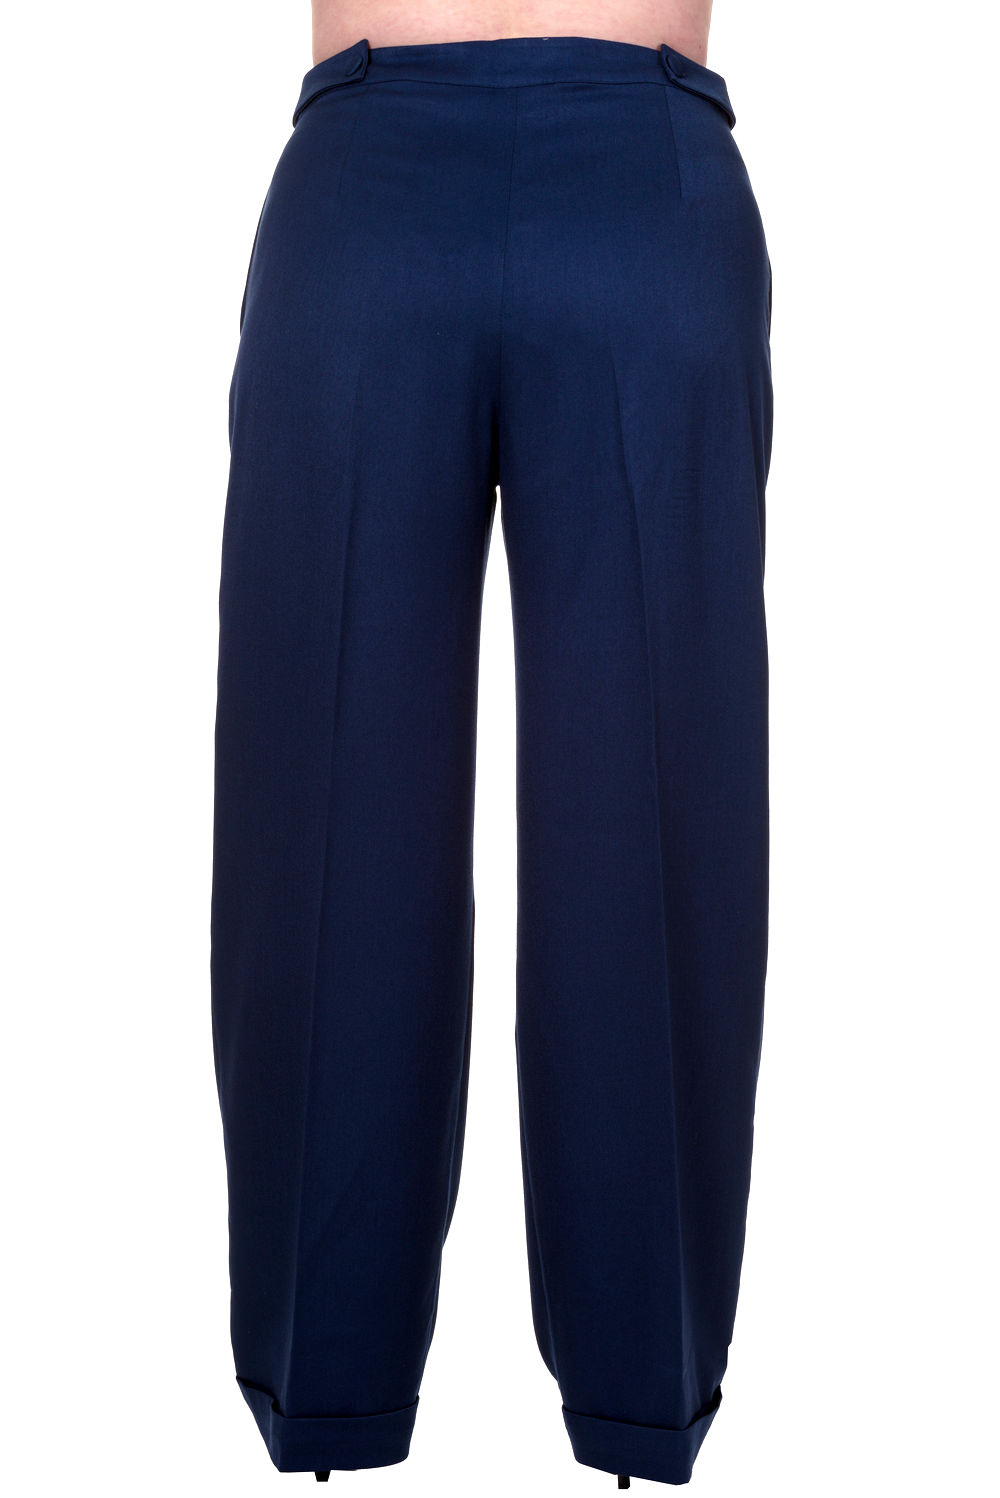 Banned Party On 1940s Navy Plus Size Trousers